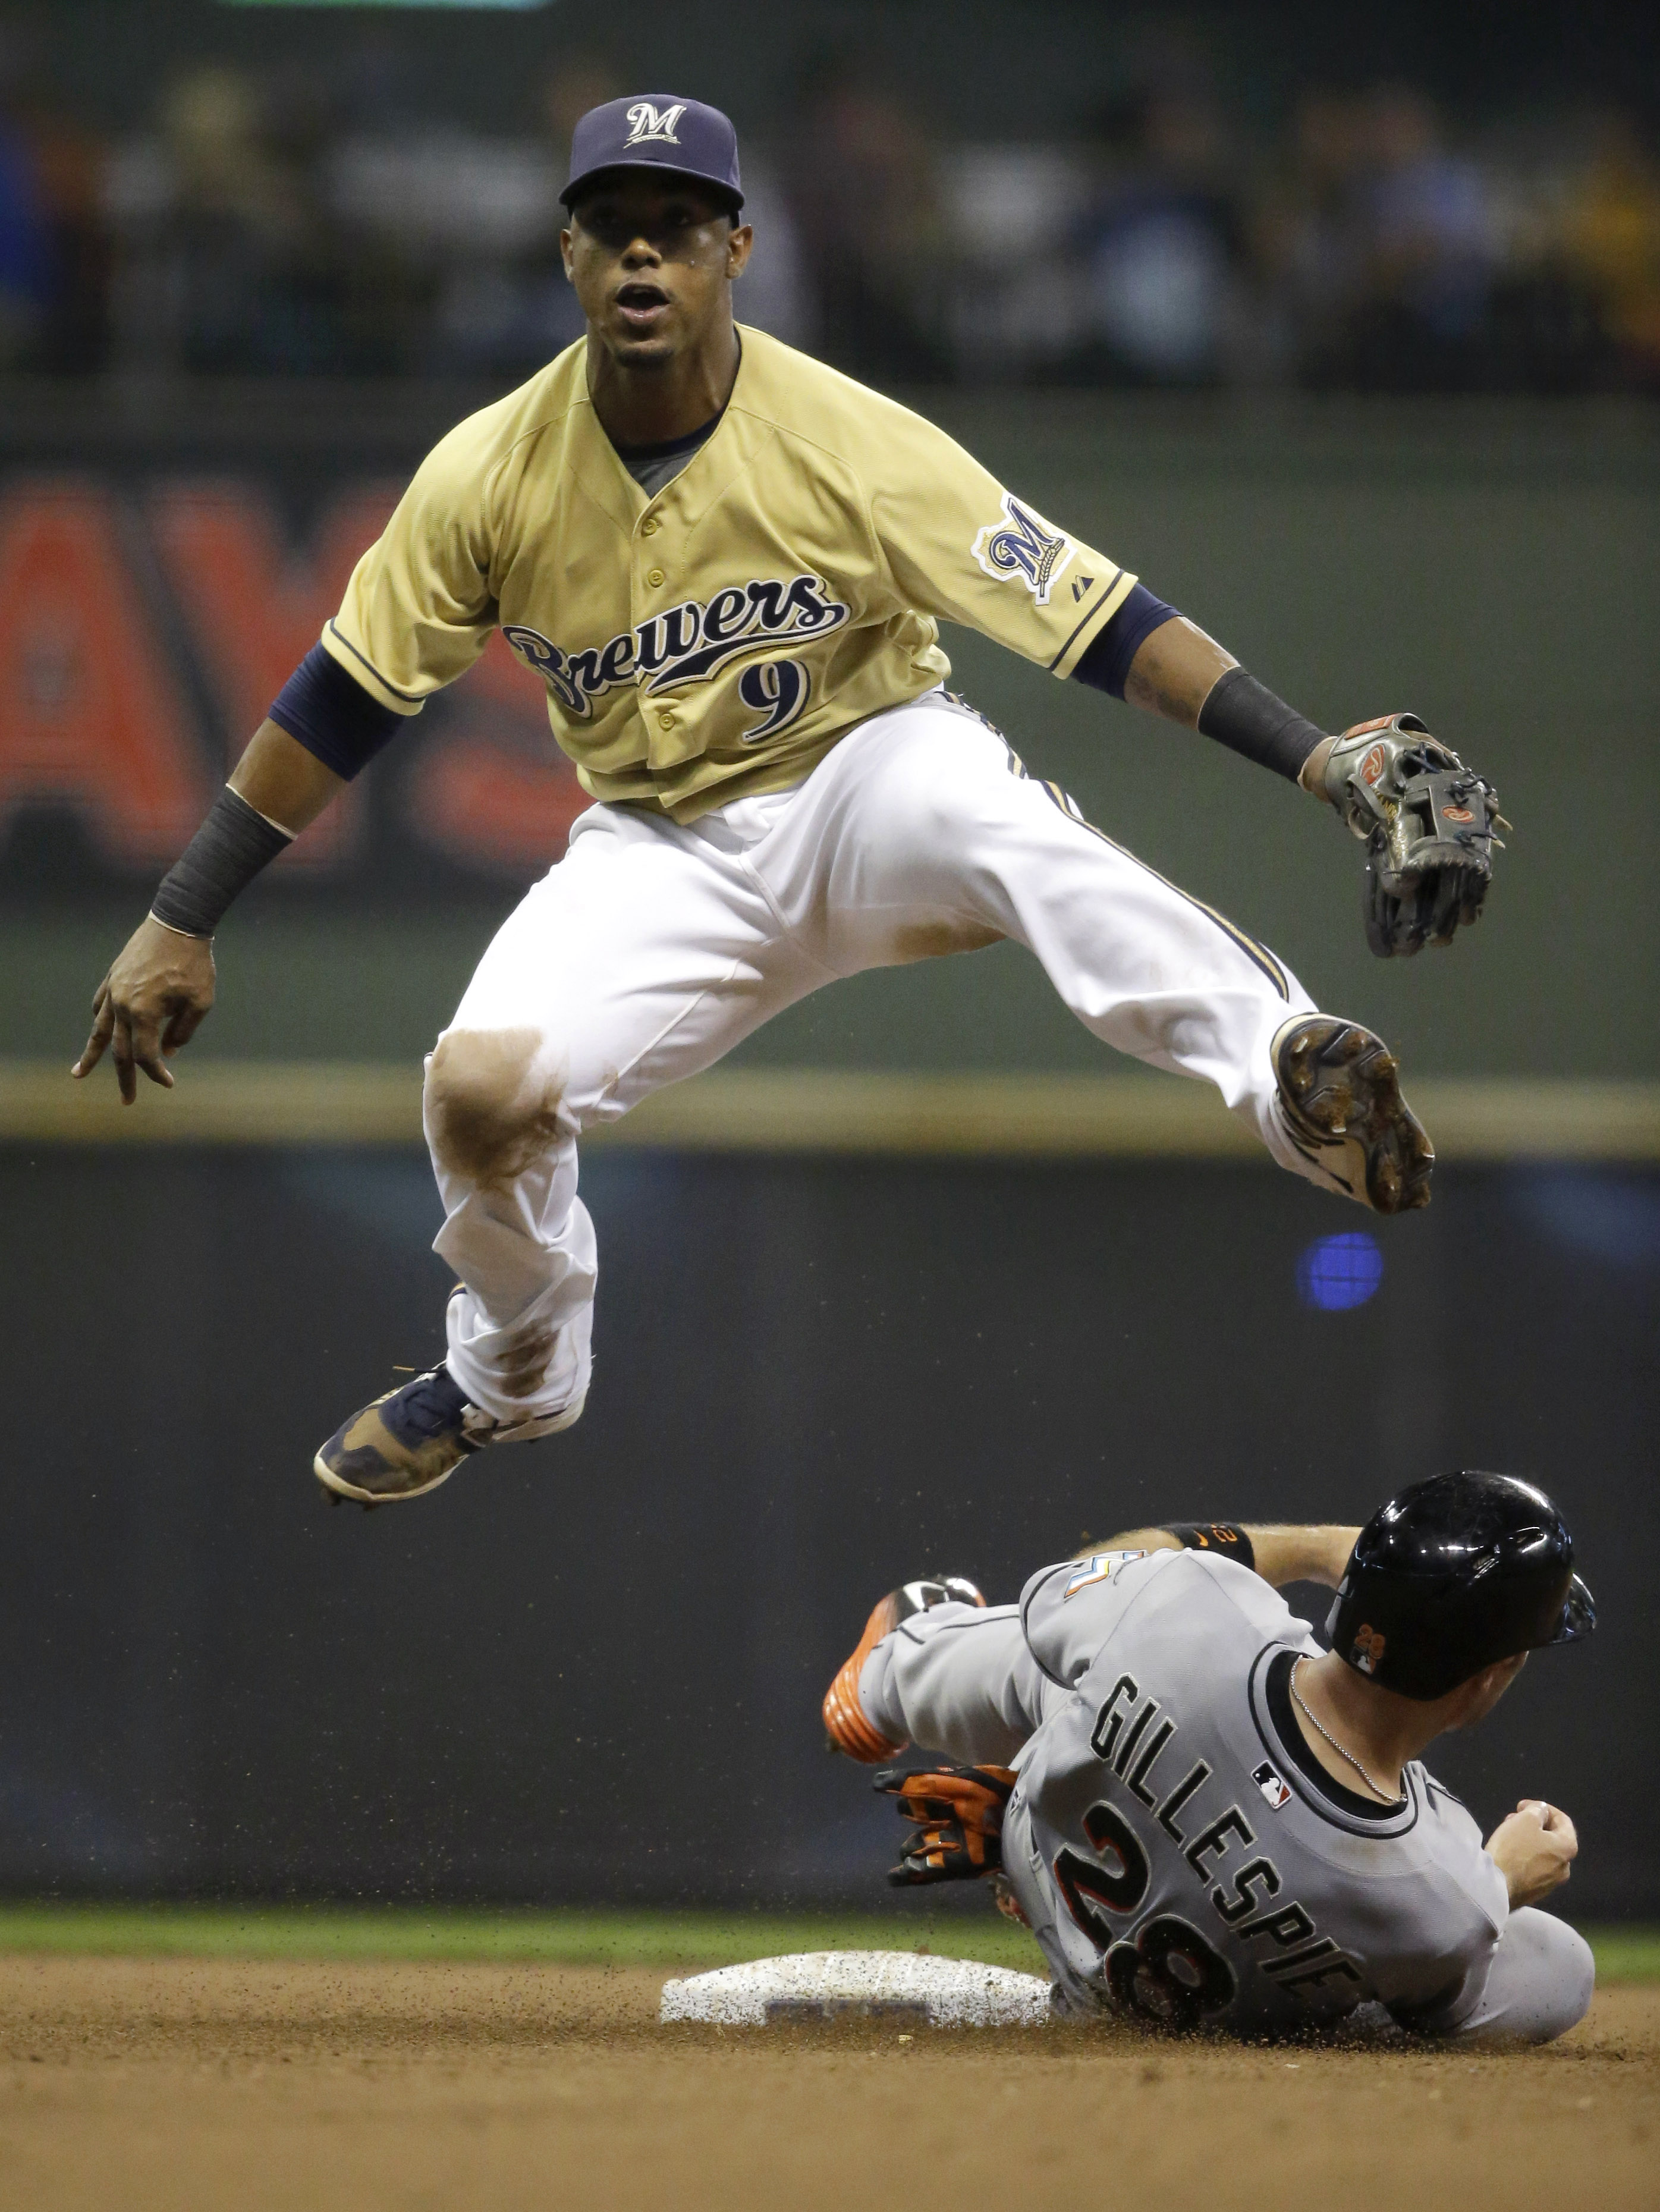 Milwaukee Brewers' Jean Segura (9) forces out Miami Marlins' Cole Gillespie at second base and completes the double play on the Marlins' Adeiny Hechavarria during the sixth inning of a baseball game Tuesday, Aug. 18, 2015, in Milwaukee. (AP Photo/Jeffrey